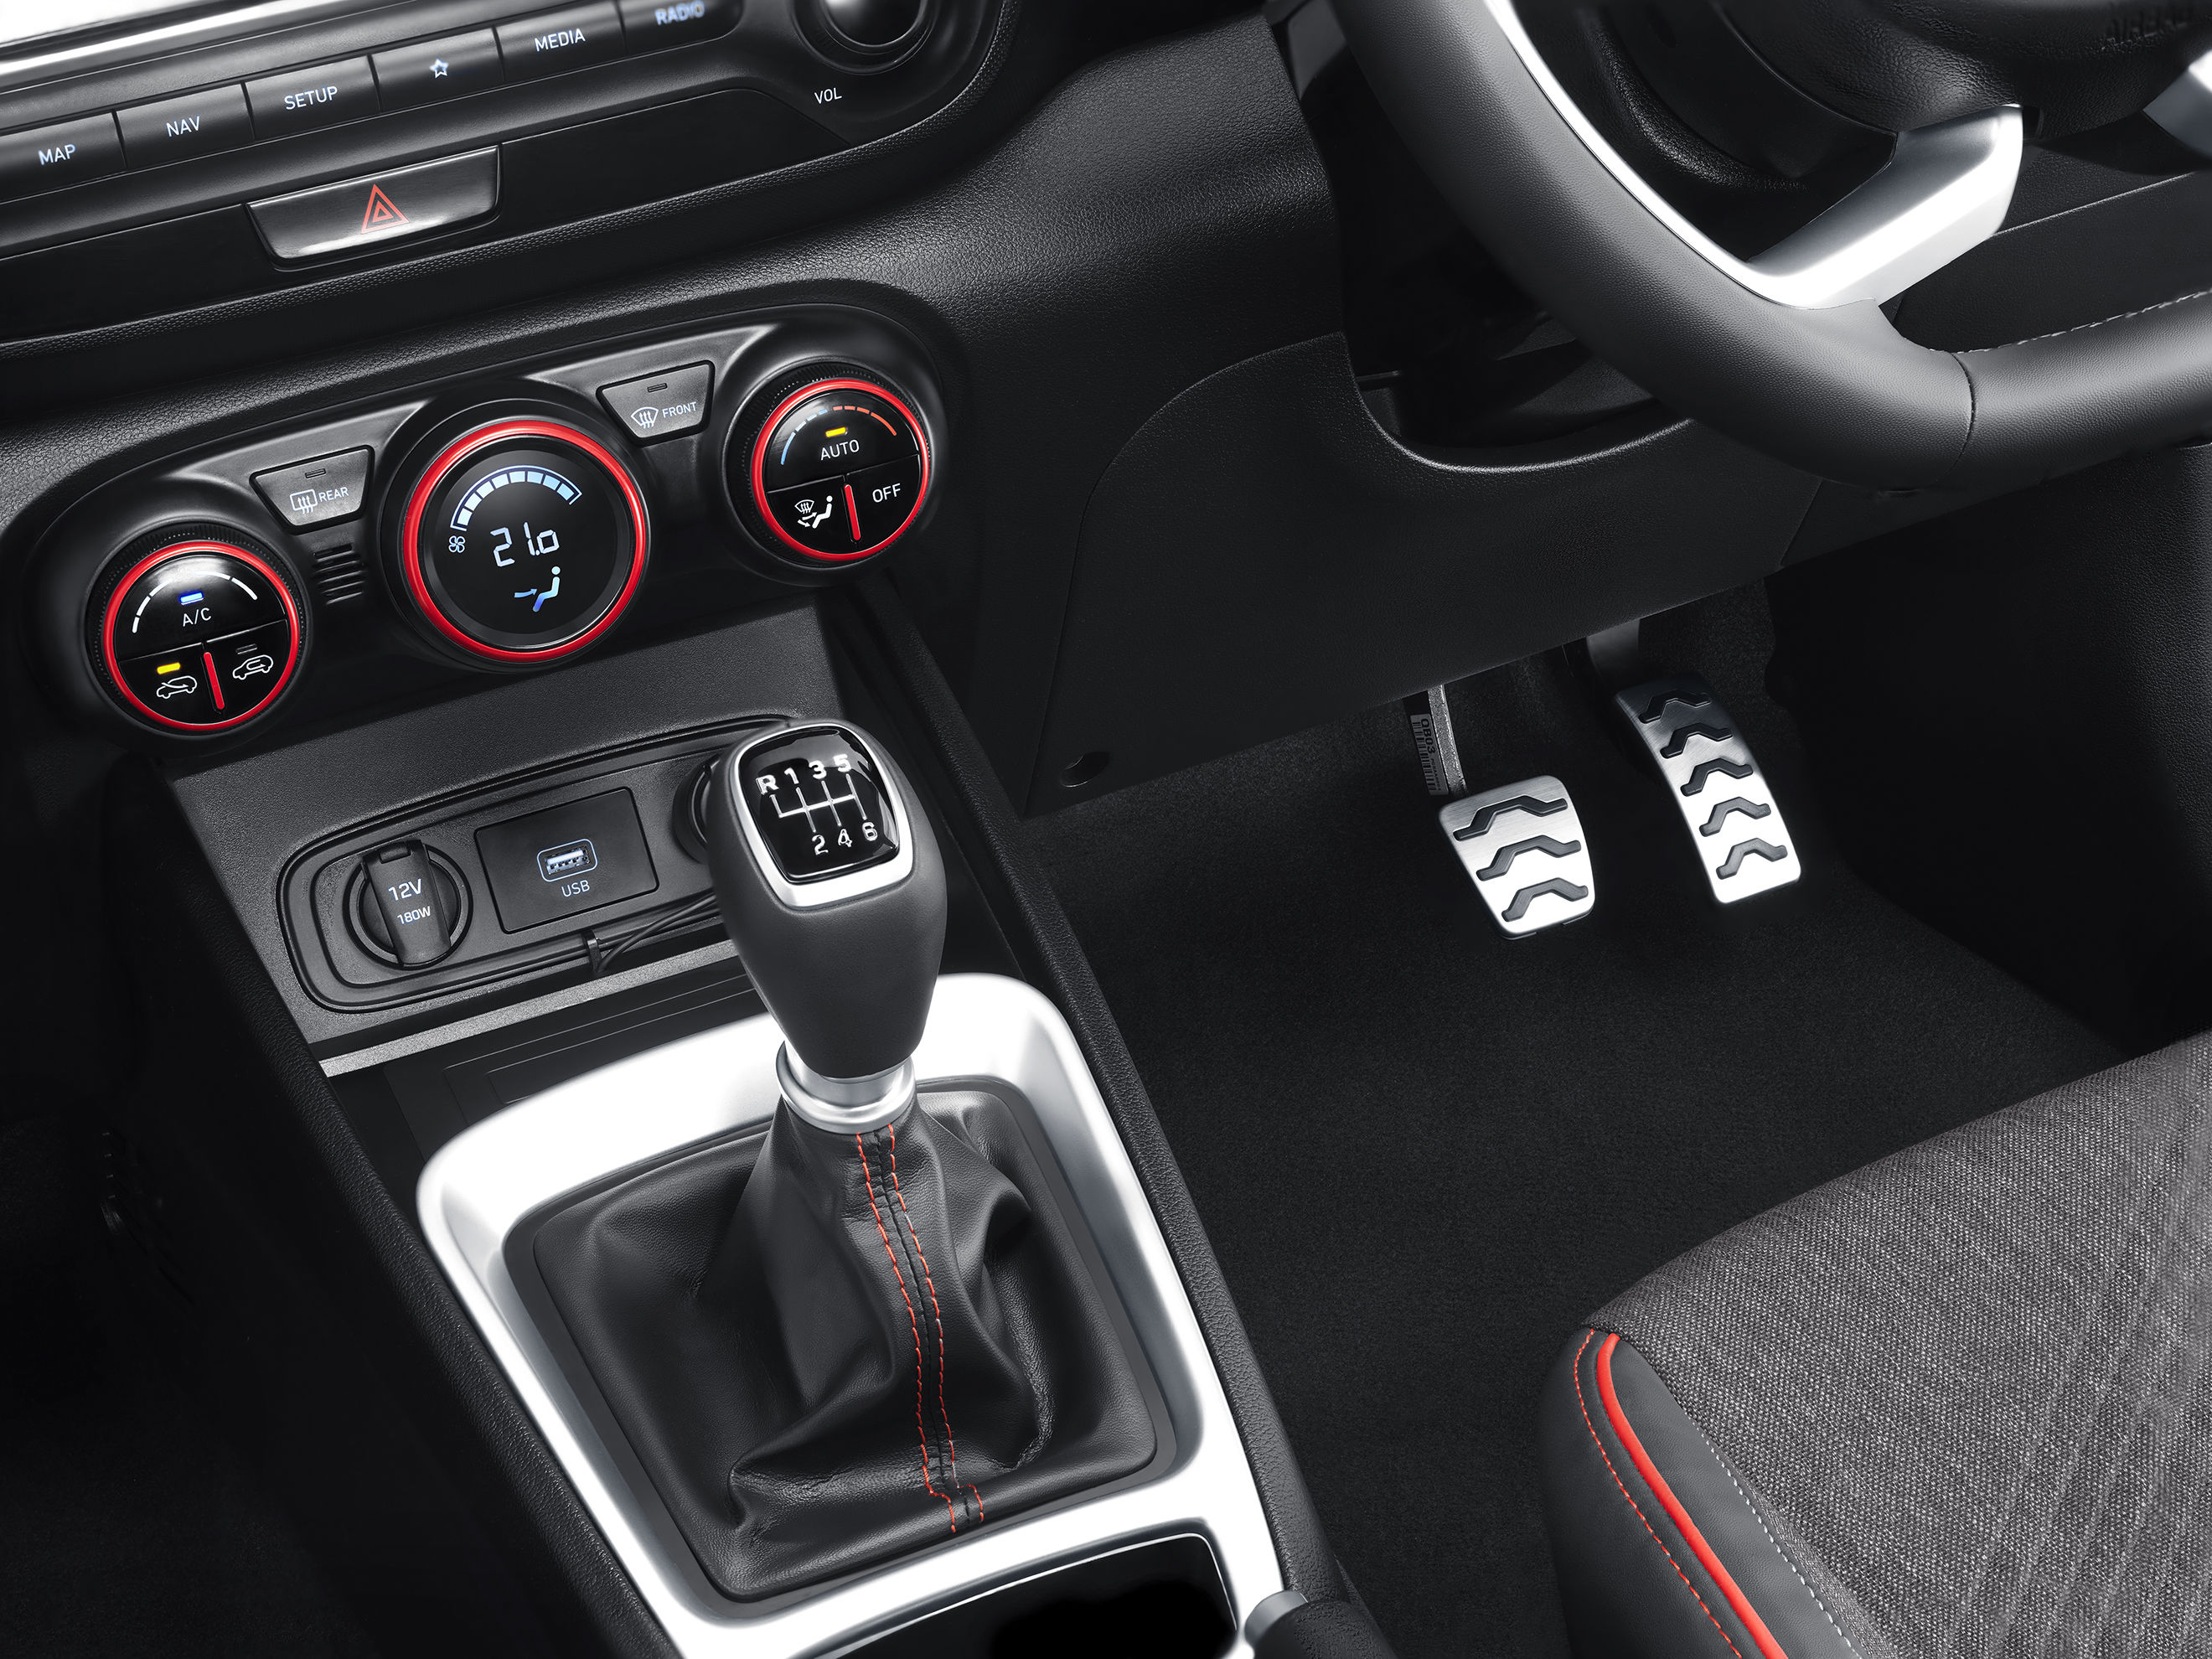 The iMT option has been made available in SX and SX(O) variants. The technology retains the gear stick but does away with the clutch.